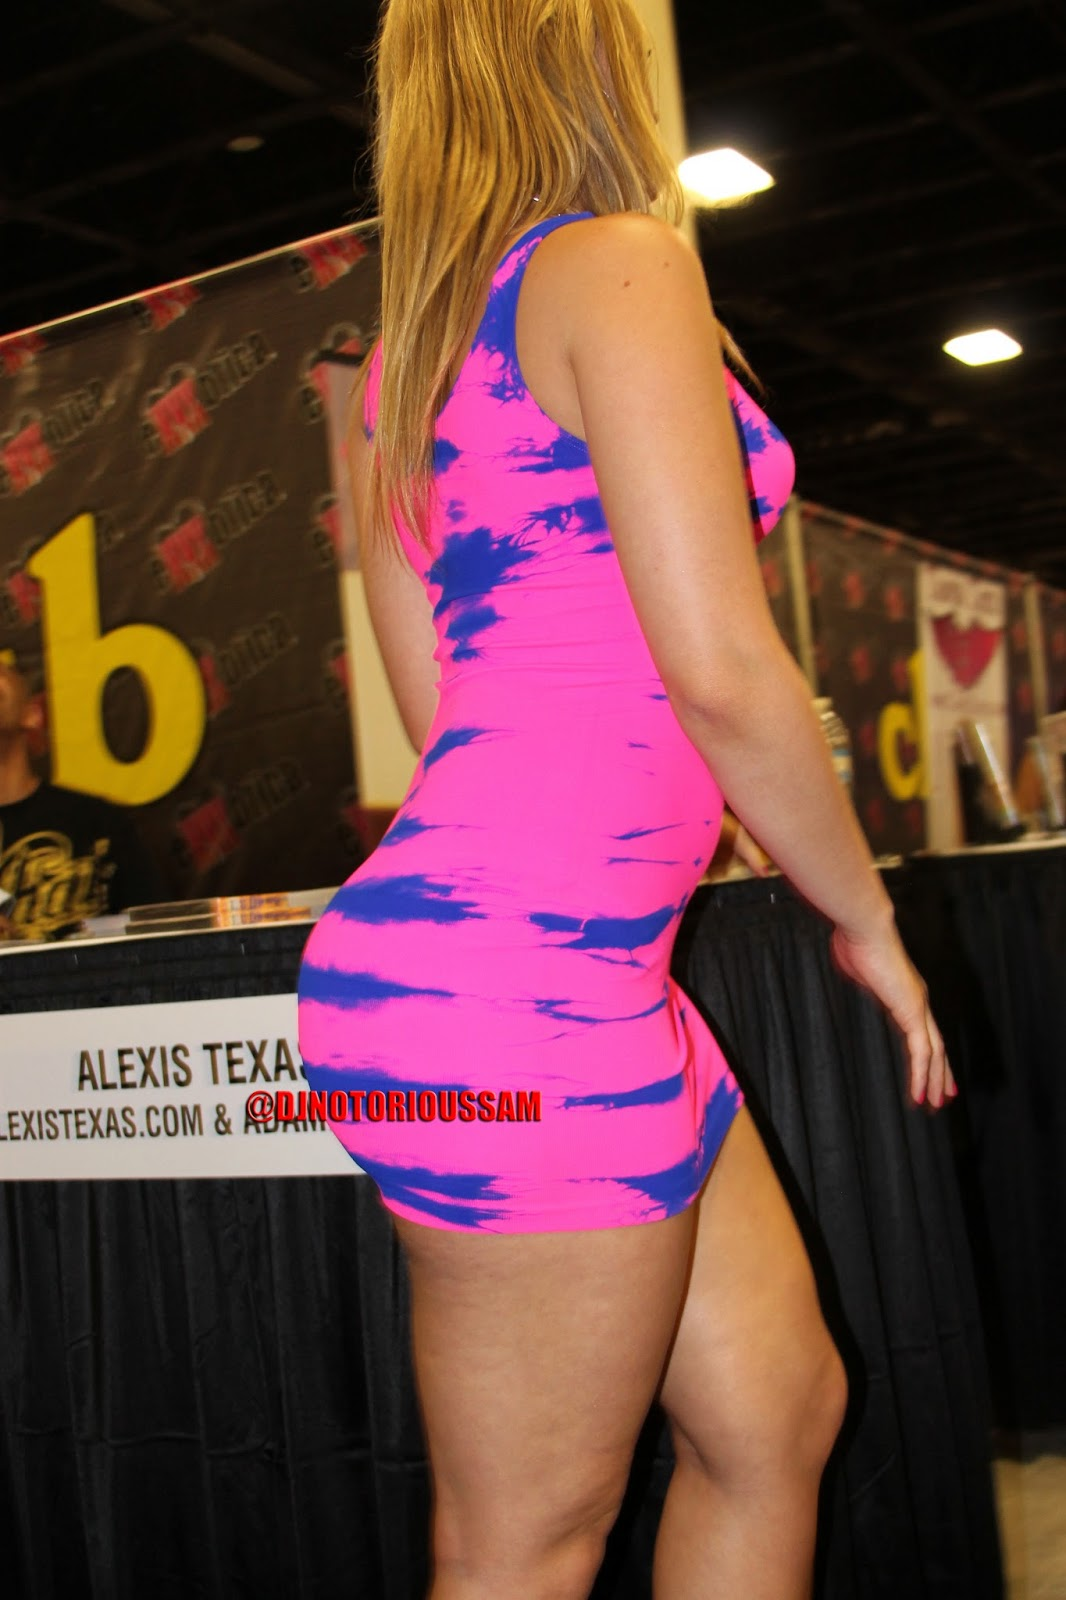 Cookin it up with alexis texas